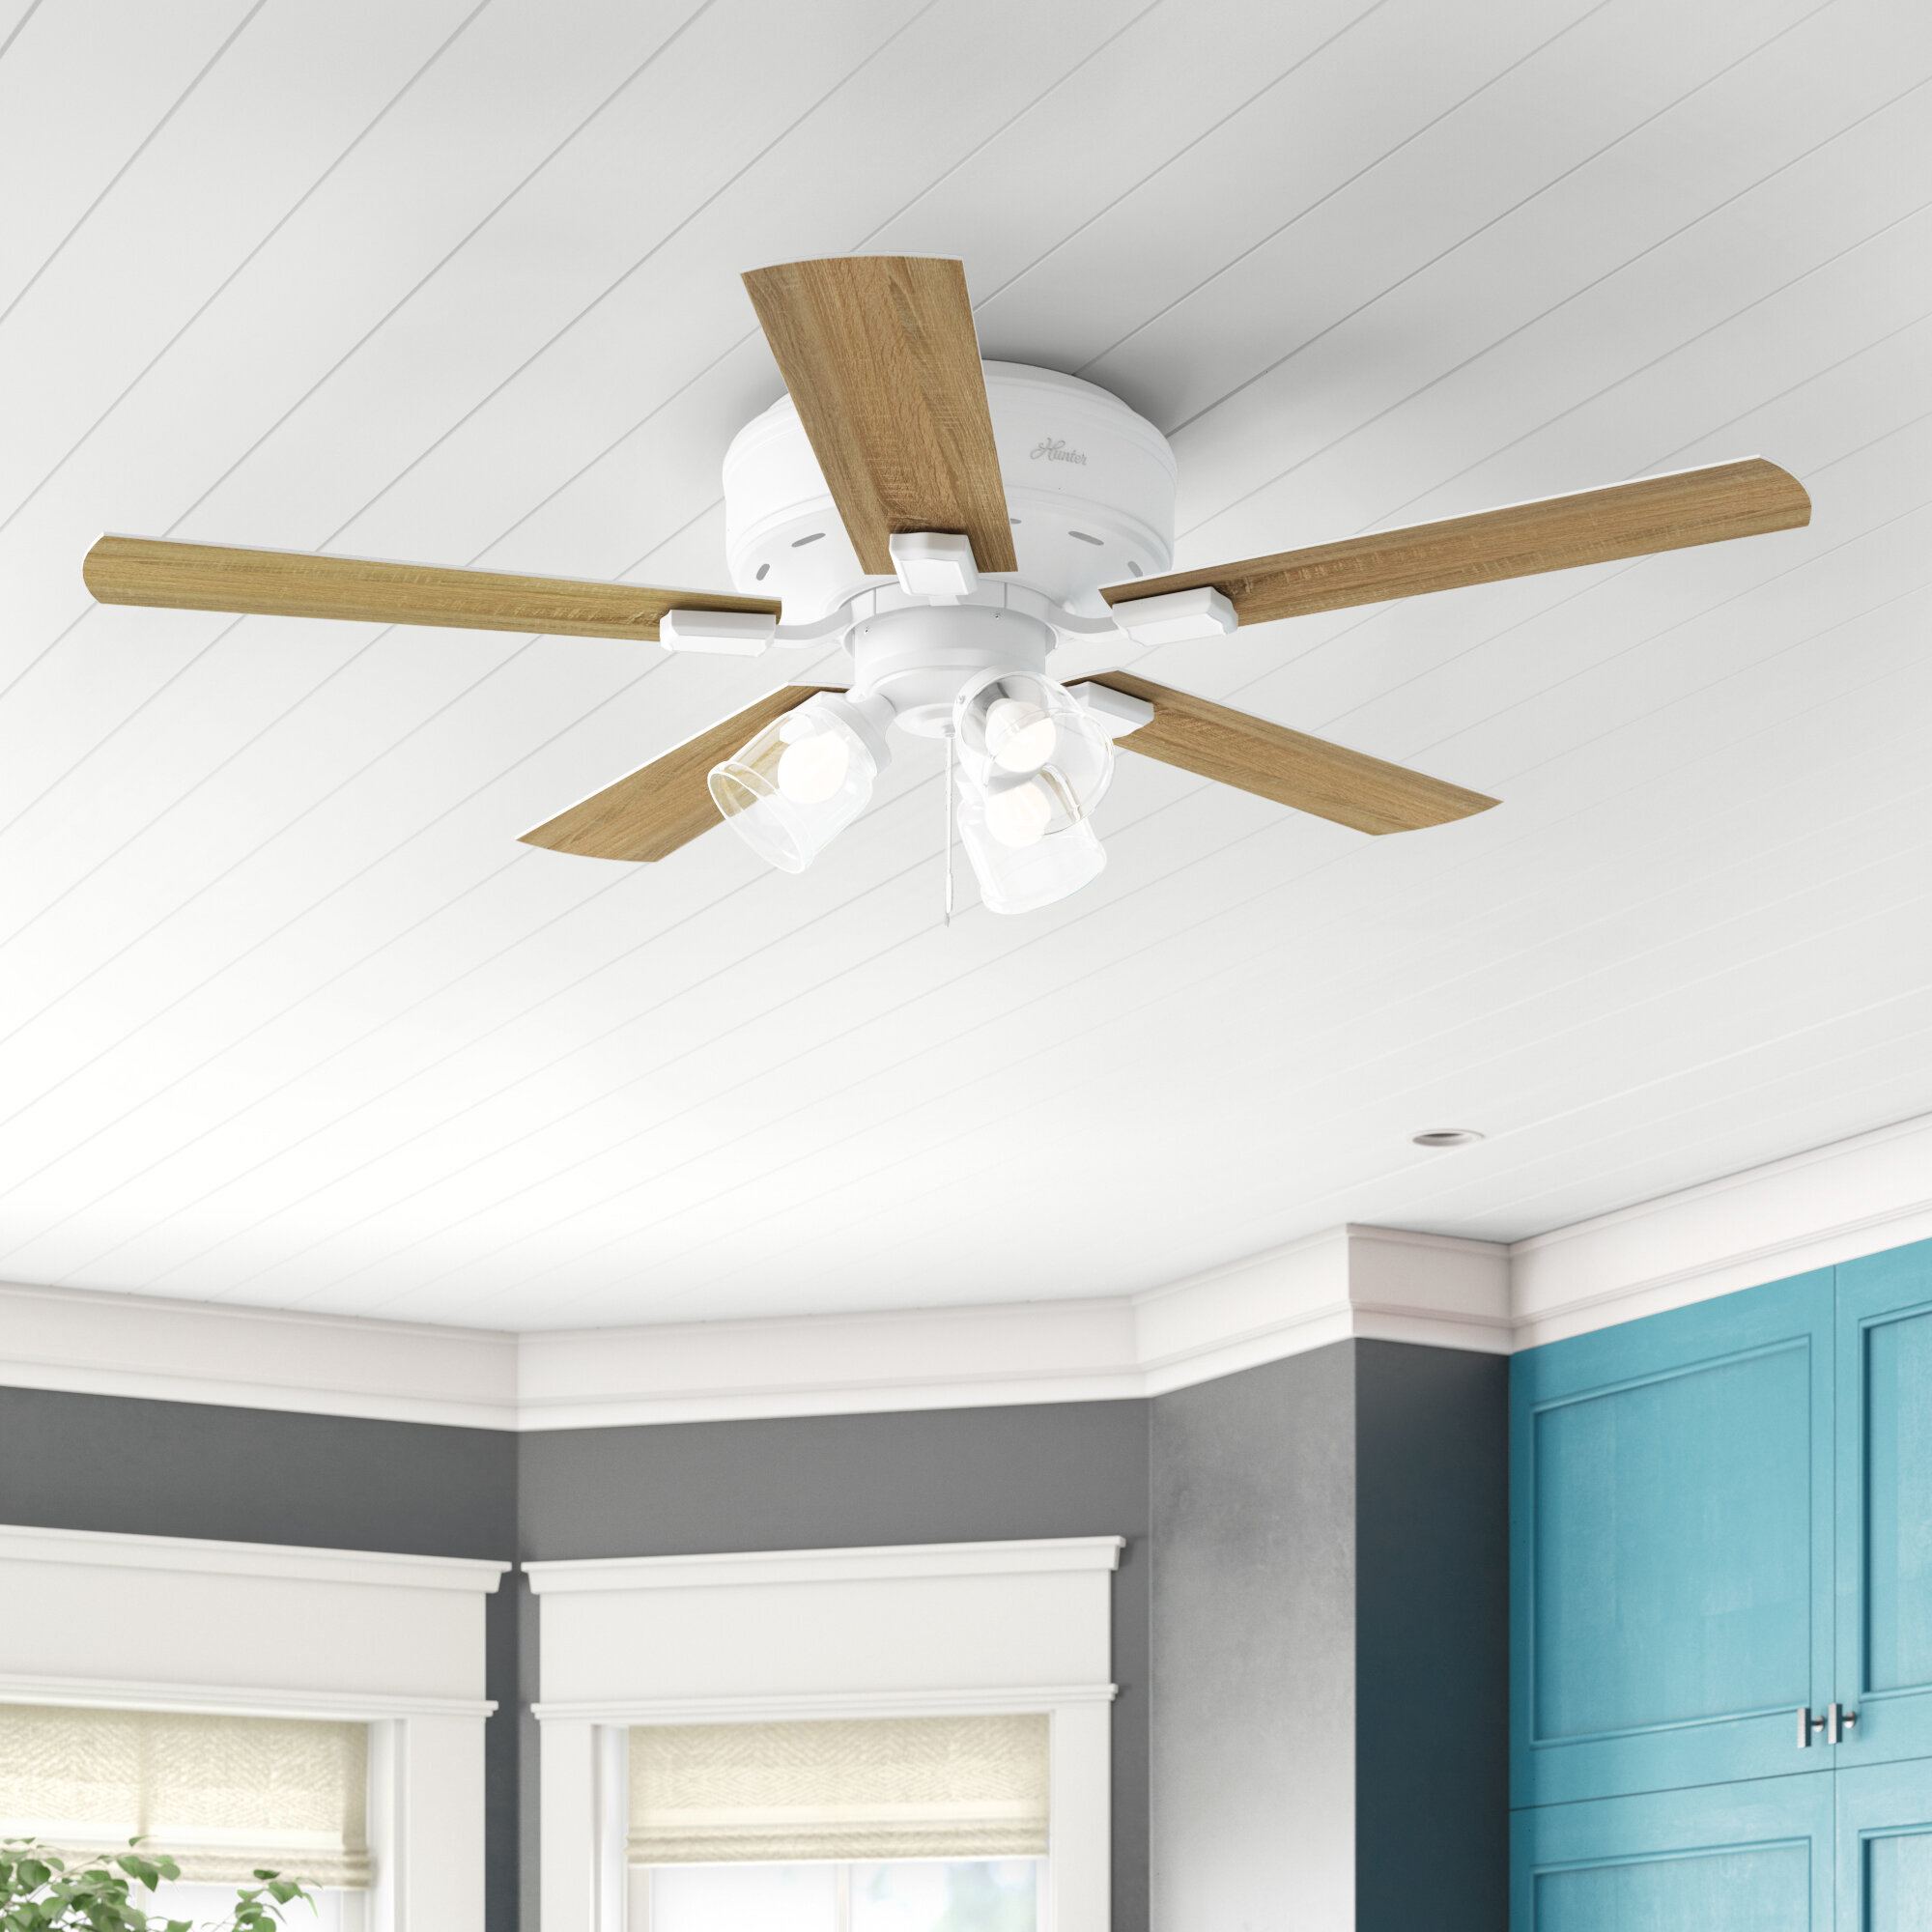 Hunter Fan 52 Crestfield 5 Blade Flush Mount Ceiling Fan With Pull Chain And Light Kit Included Reviews Wayfair